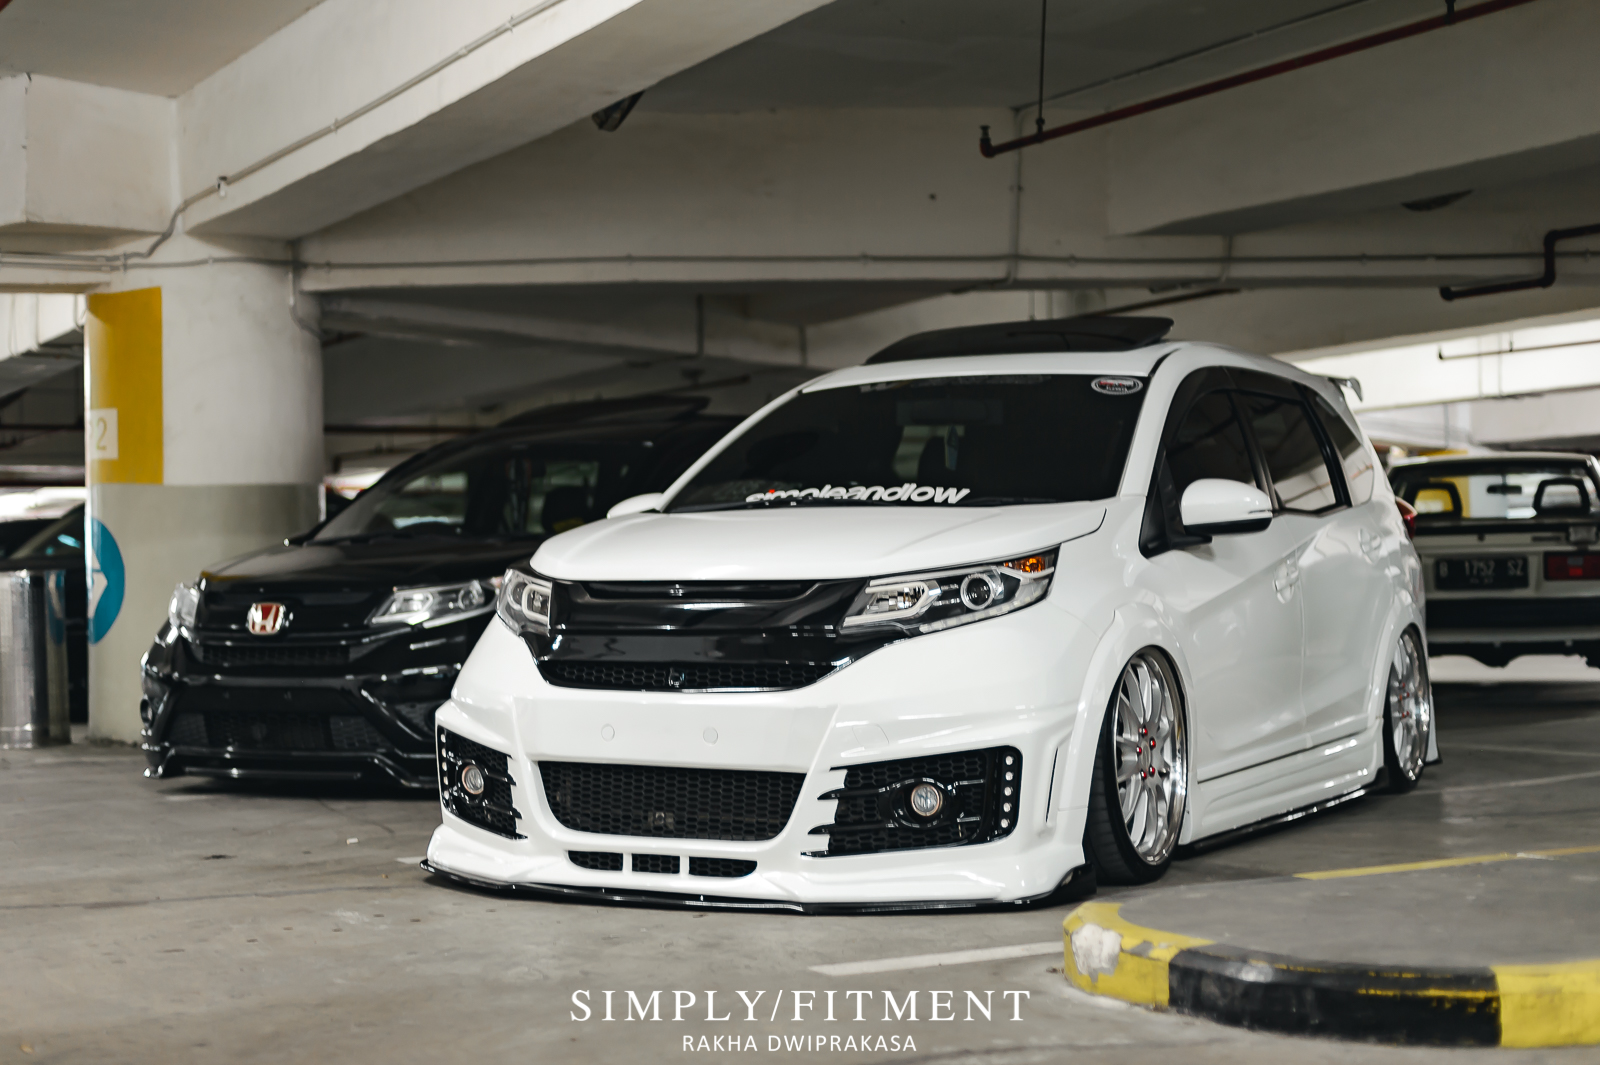 LOWFITMENTday 3